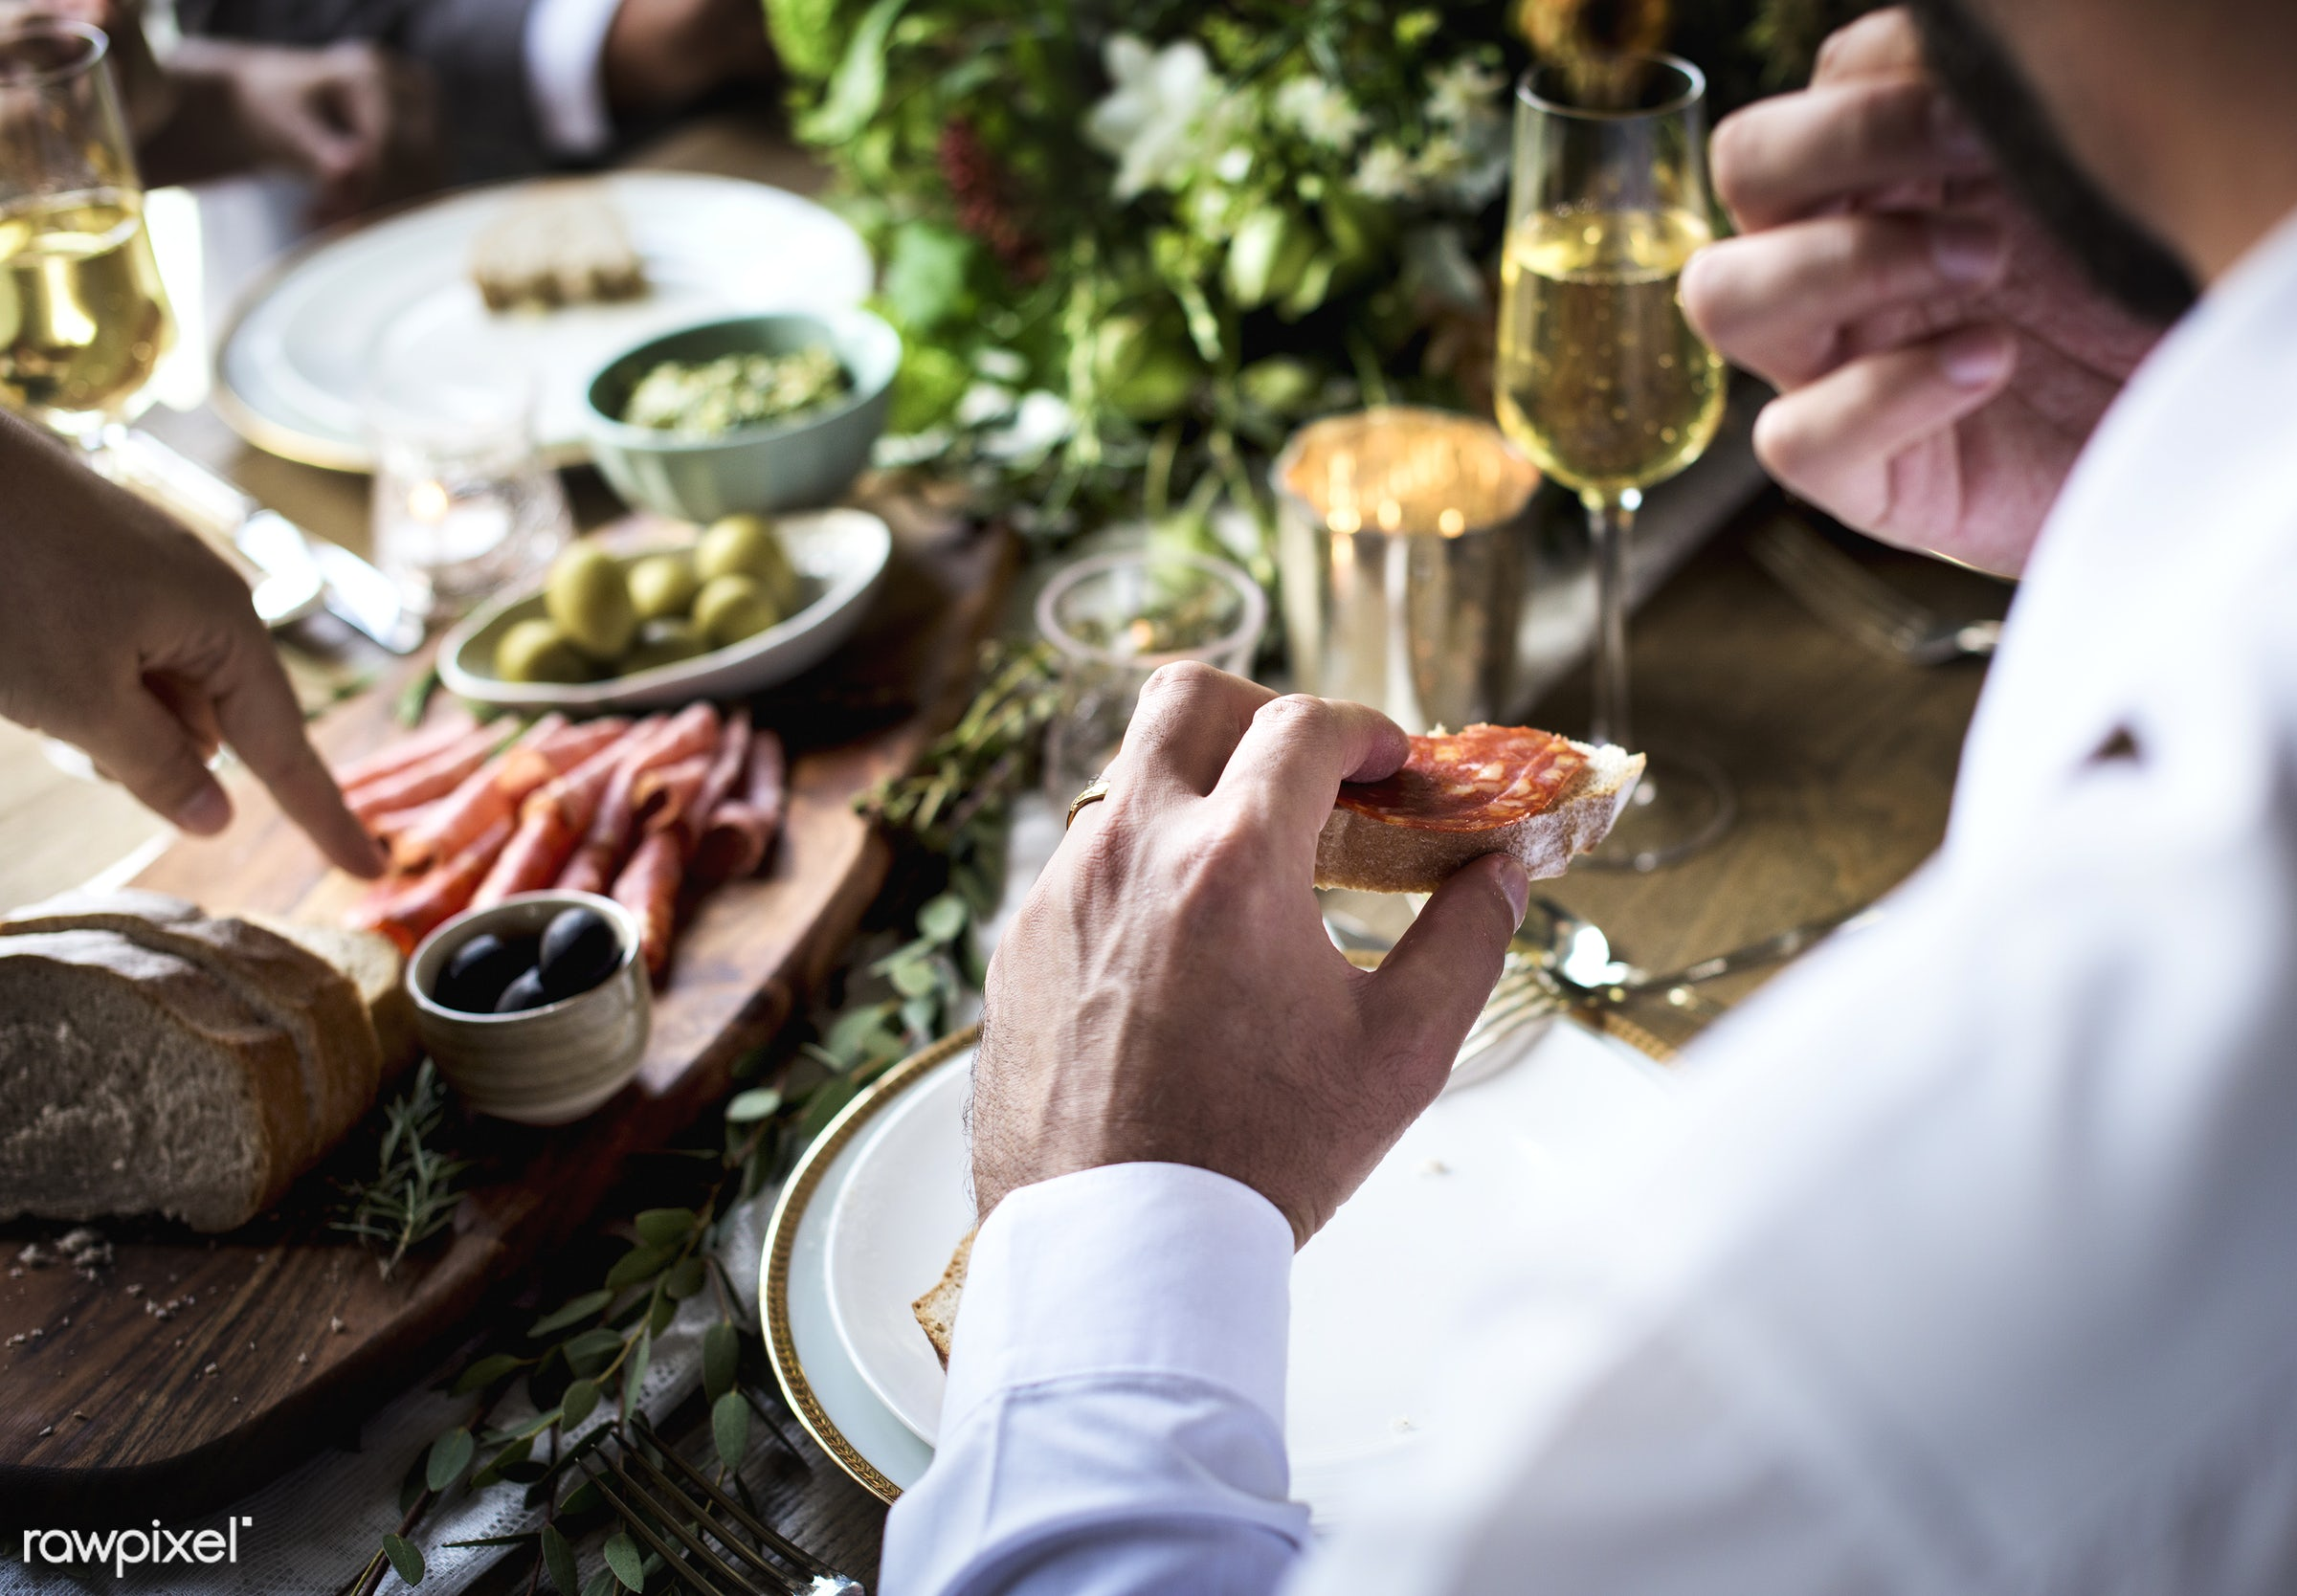 ham, cuisine, holding, occasion, party, people, friends, hands, bread, banquet, man, olives, meal, table setting, dinner,...